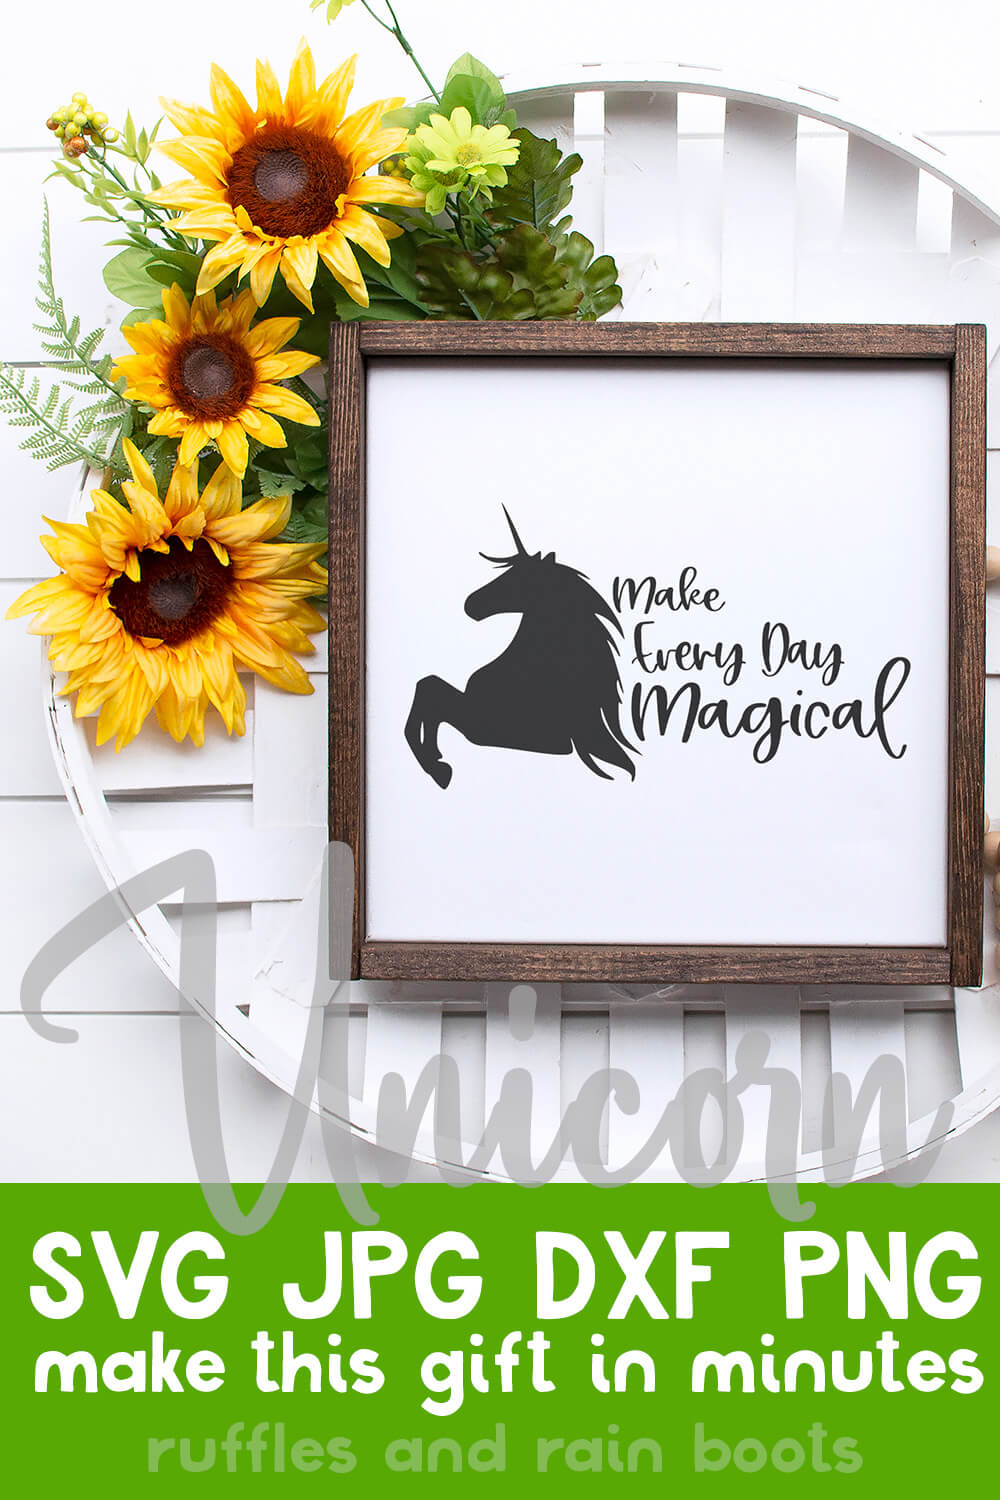 make everyday magical free unicorn cut file for cricut on pretty sunflower wall sign with text which reads unicorn svg jpg dxf png make this gift in minutes